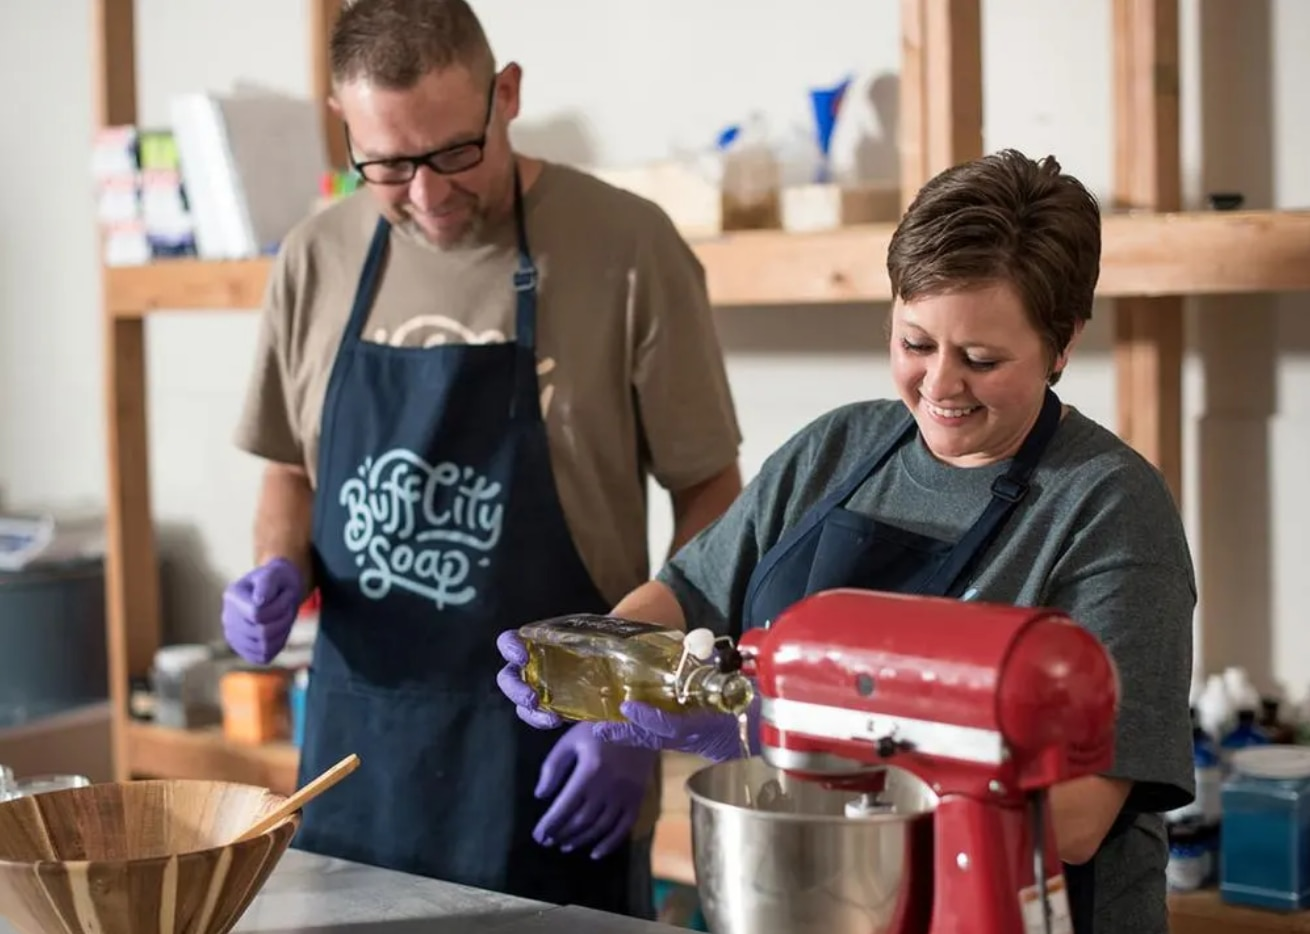 Buff City Soap founder Brad Kellum (left) is now in a product development role creating new soaps for the company. The retail soap chain is moving its headquarters from Memphis to Dallas.